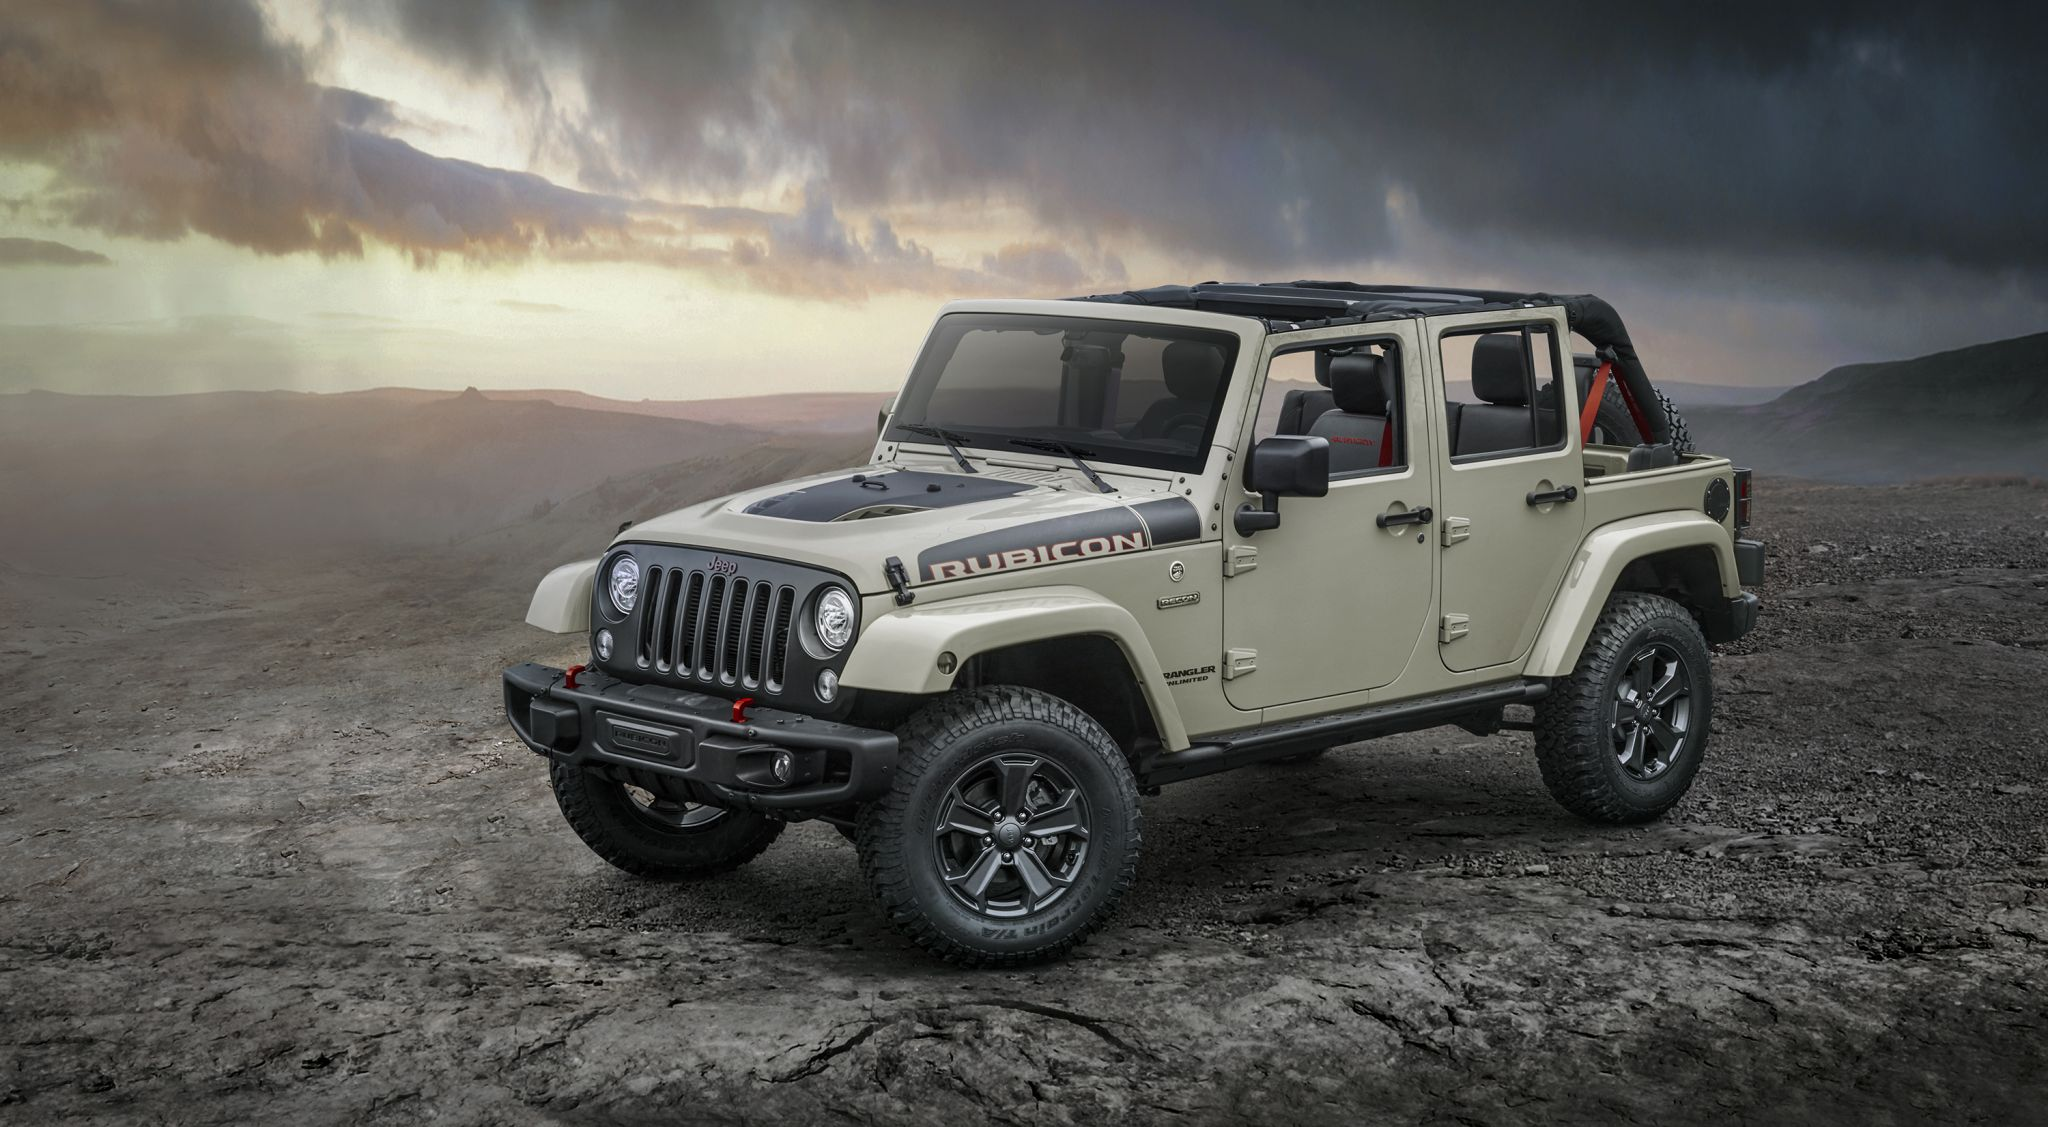 New 2017 Jeep Wrangler Rubicon Recon ready to tackle the trail